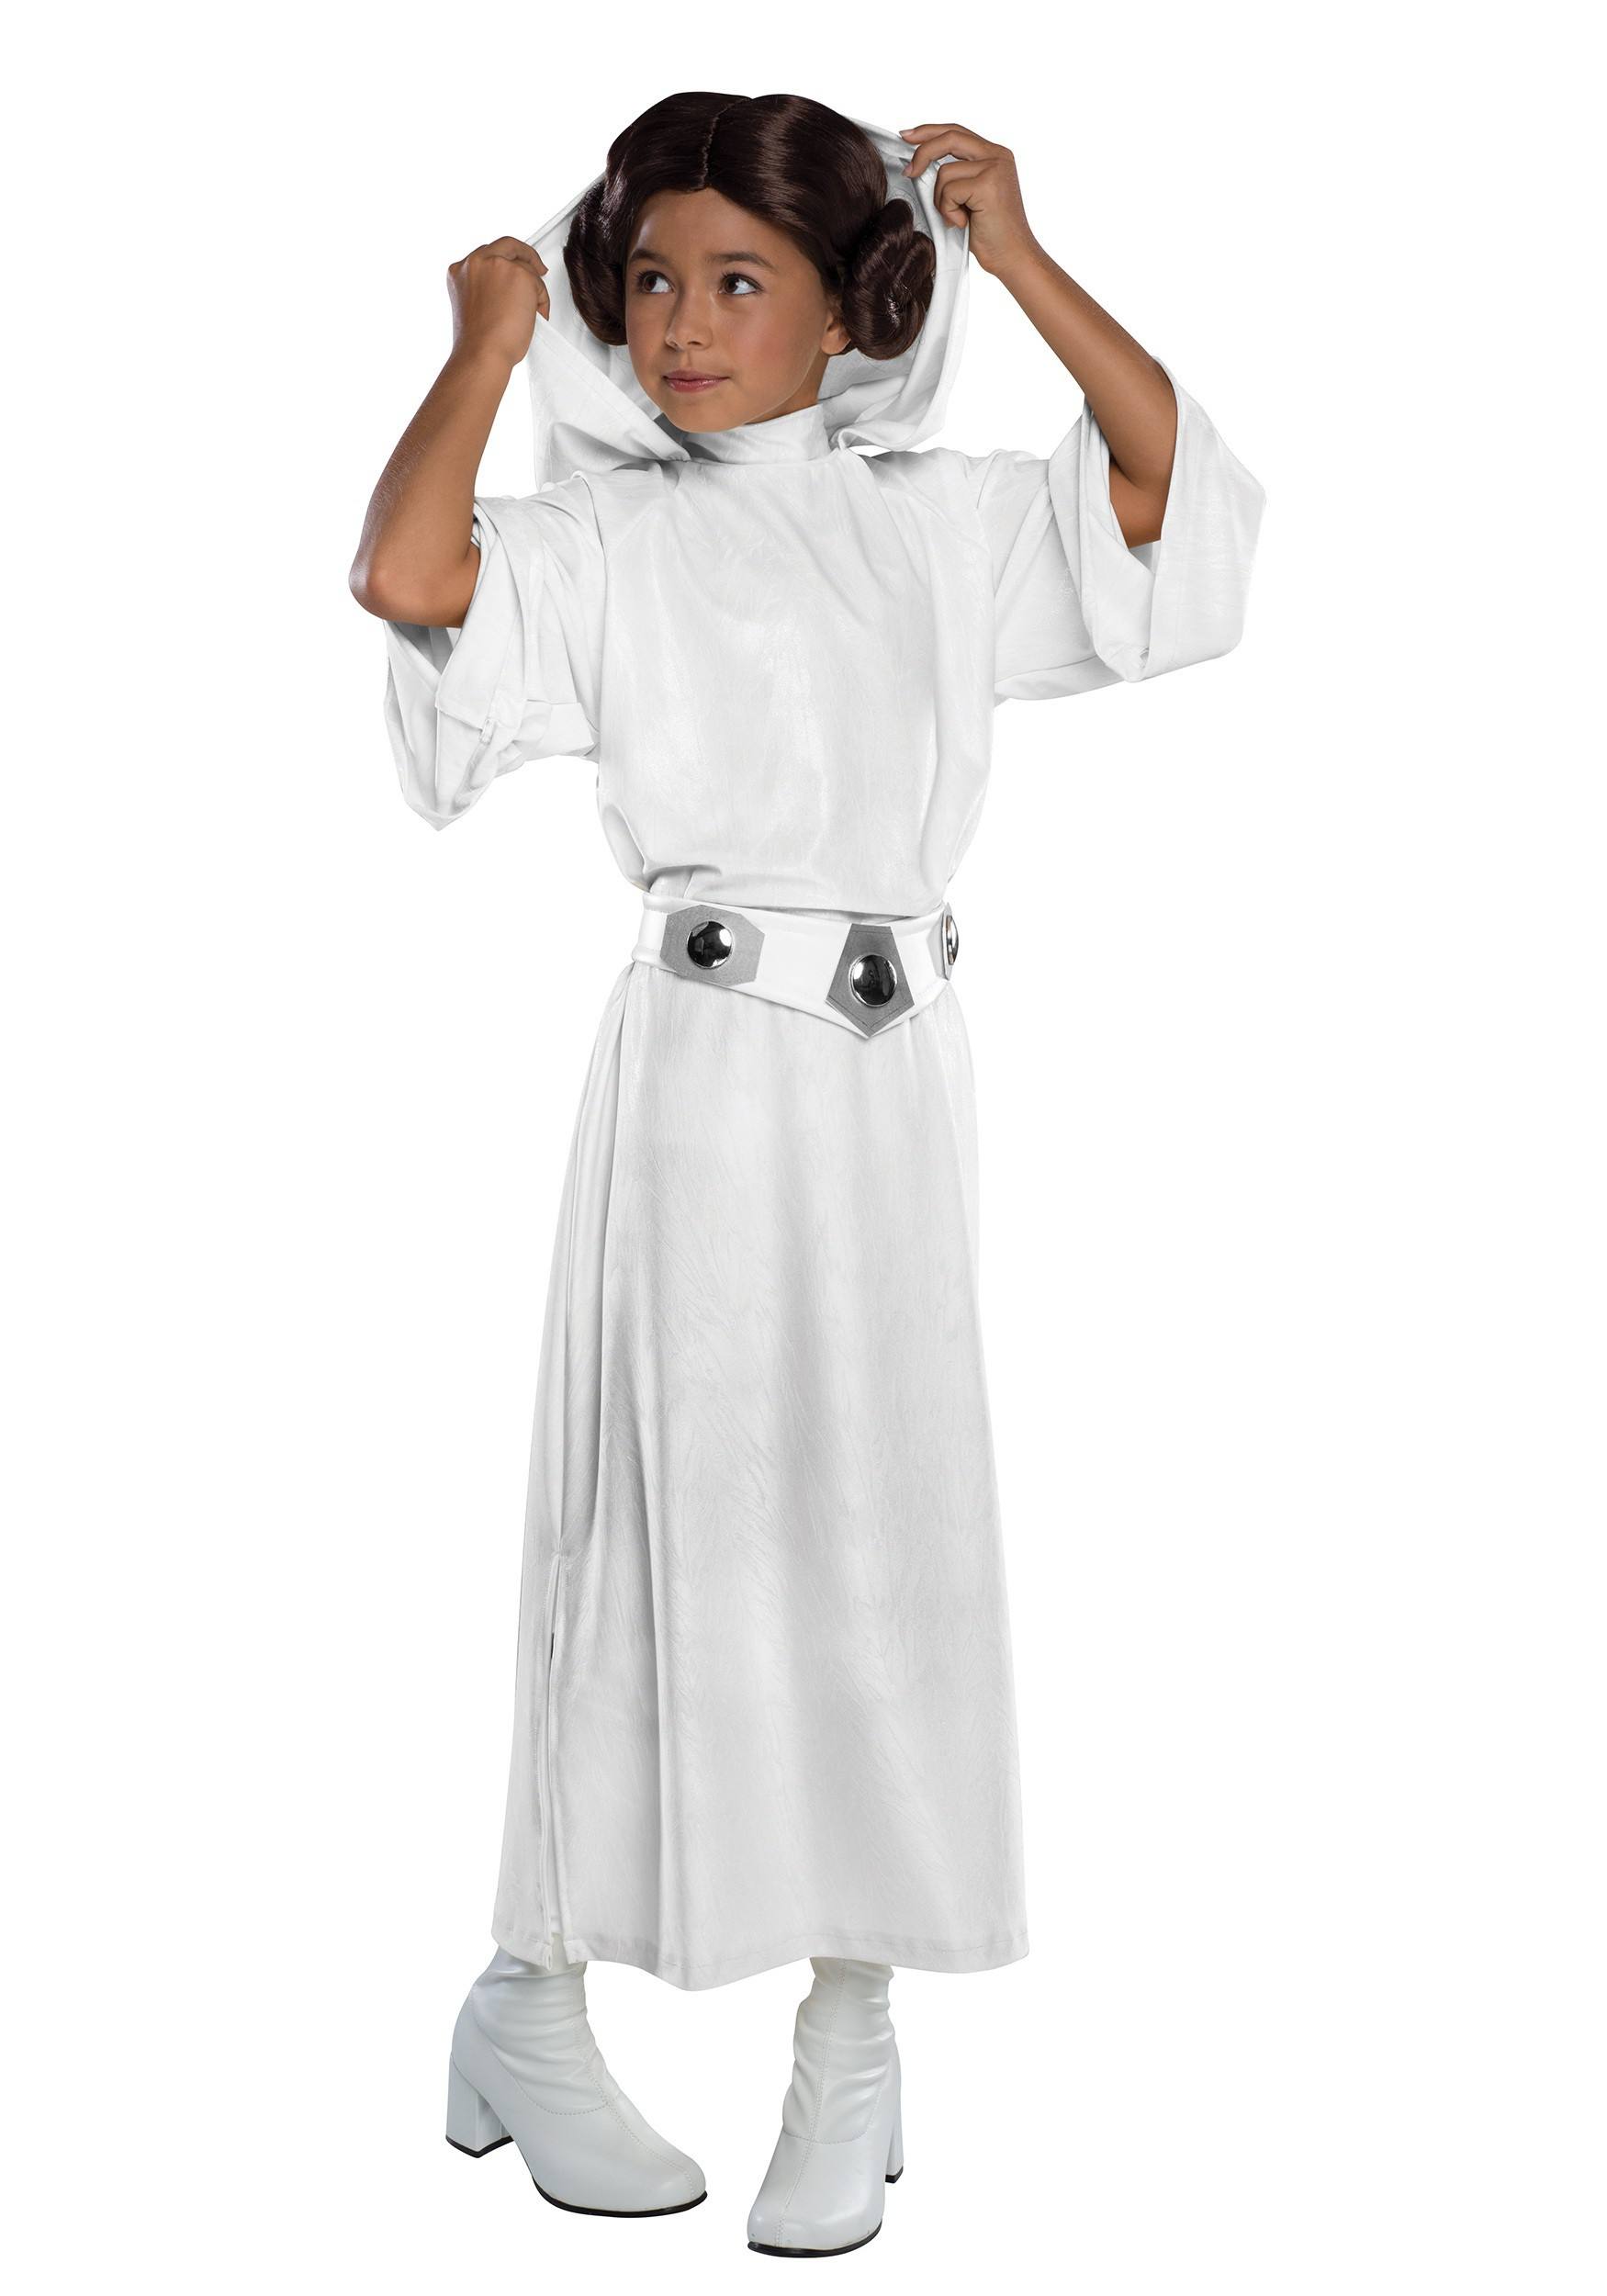 Deluxe Child Princess Leia Costume  sc 1 st  Halloween Costumes & Star Wars Costumes - Adult u0026 Kids Star Wars Costumes